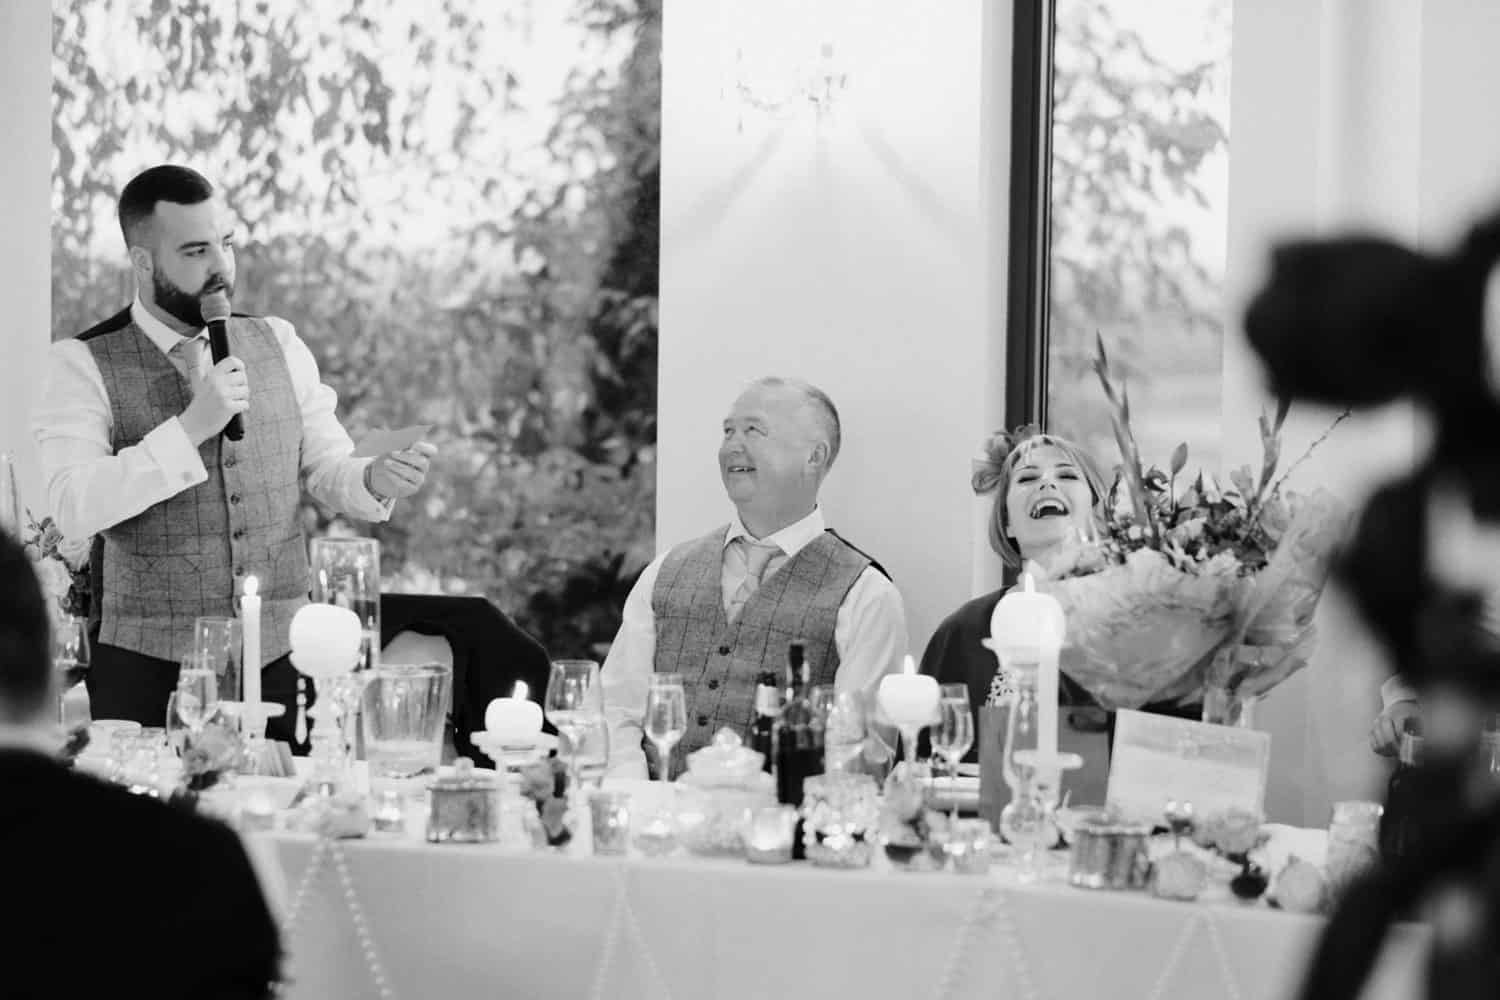 top table laughs